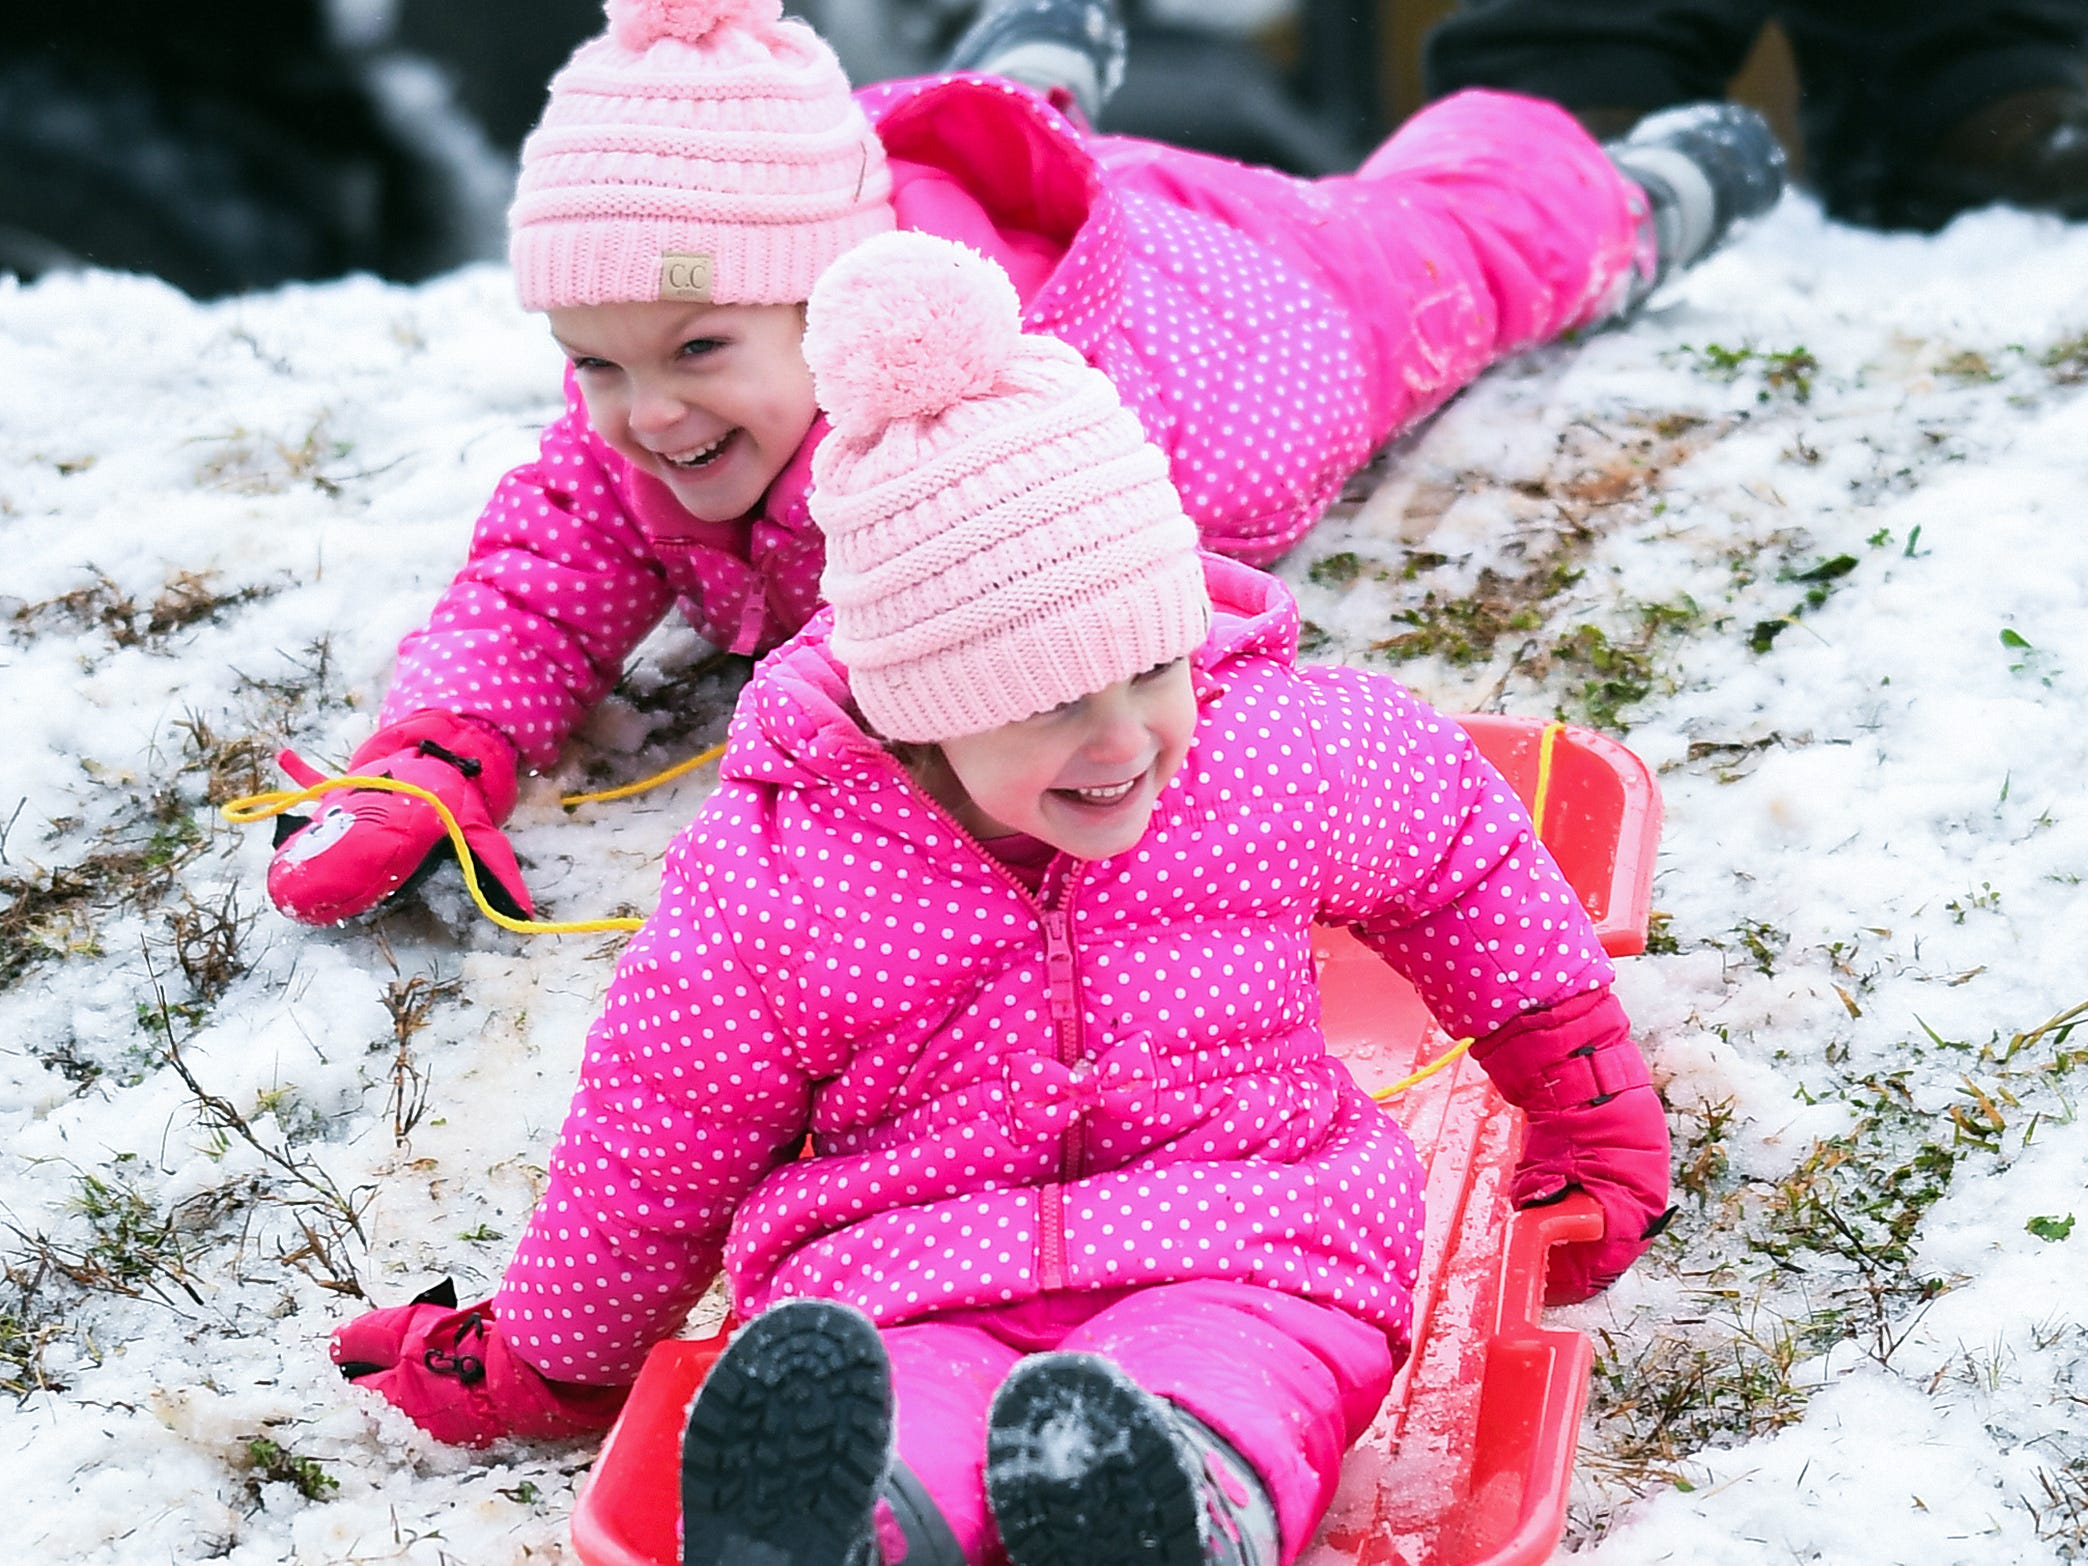 Twins Britt, front, and Addi Clinkscales sled down a hill in Belton after a layer of sleet fell early Sunday December 9, 2018.